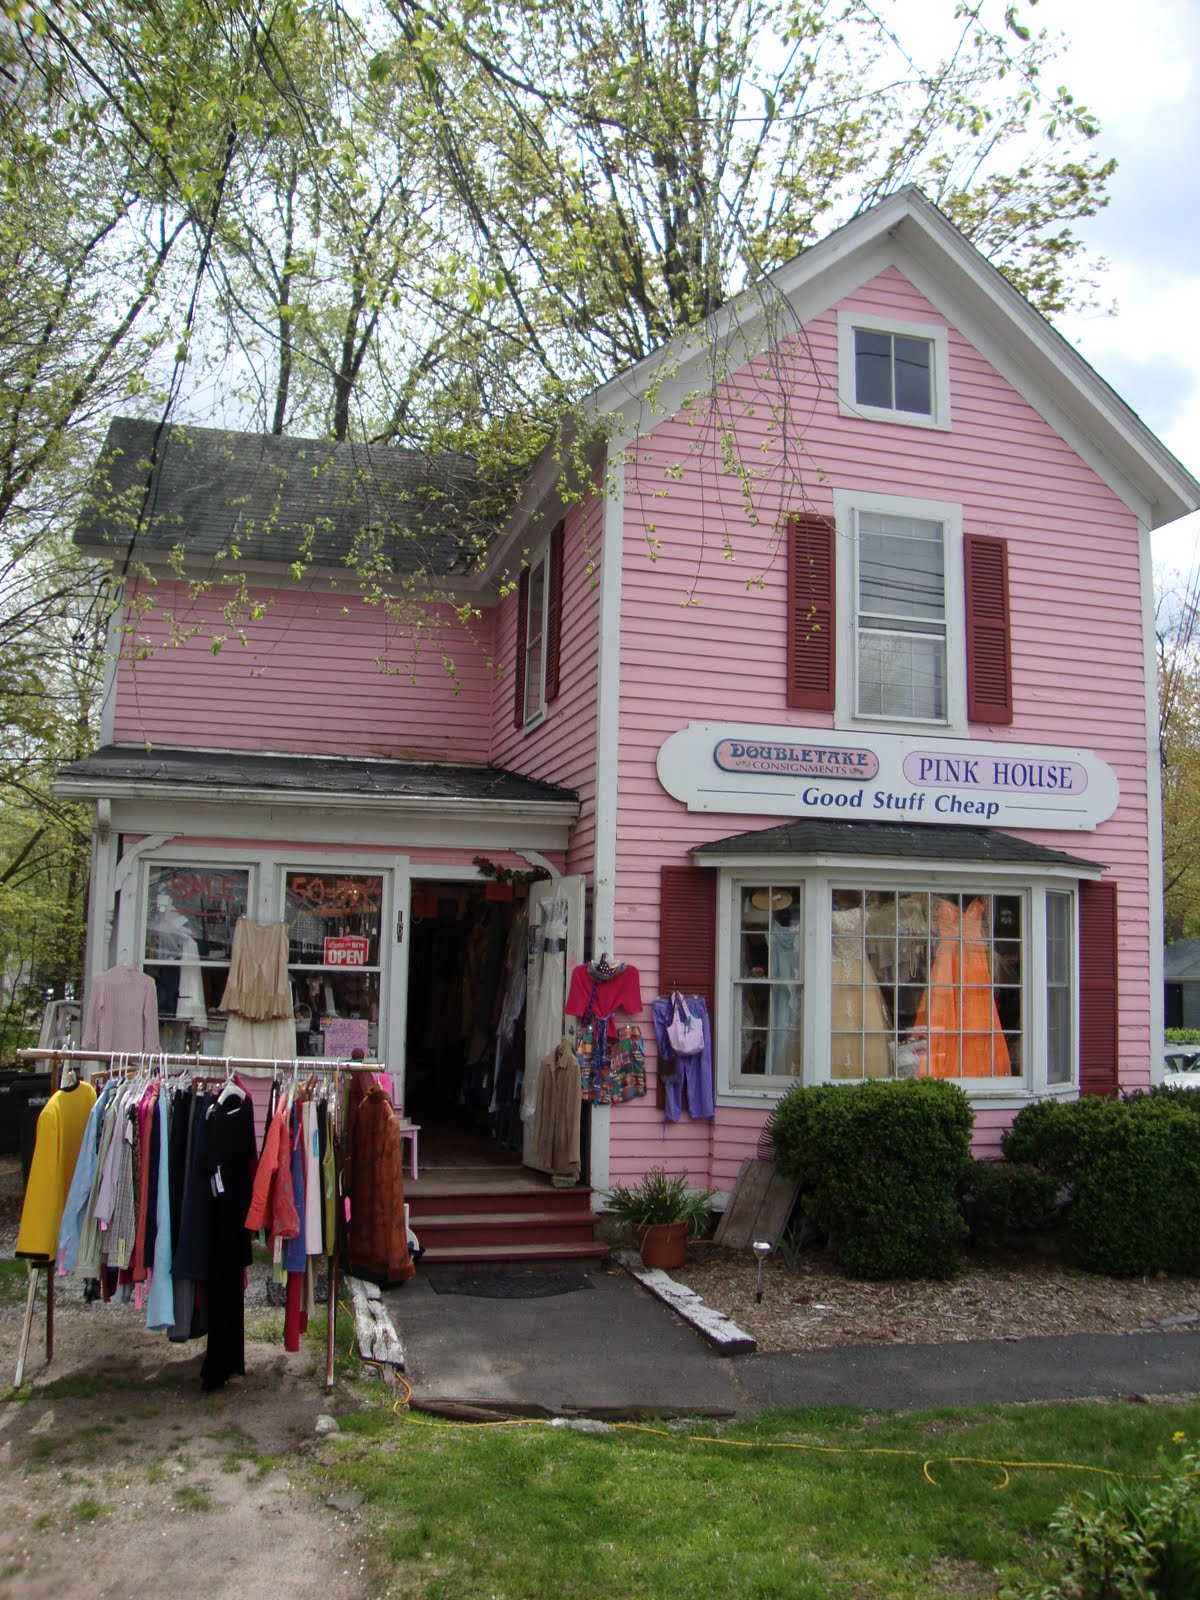 Of Canton Which Is Housed In This Adorable Pink House Or I Ve Driven Ped It A Zillion Times Looks So Cute Kept Meaning To Stop